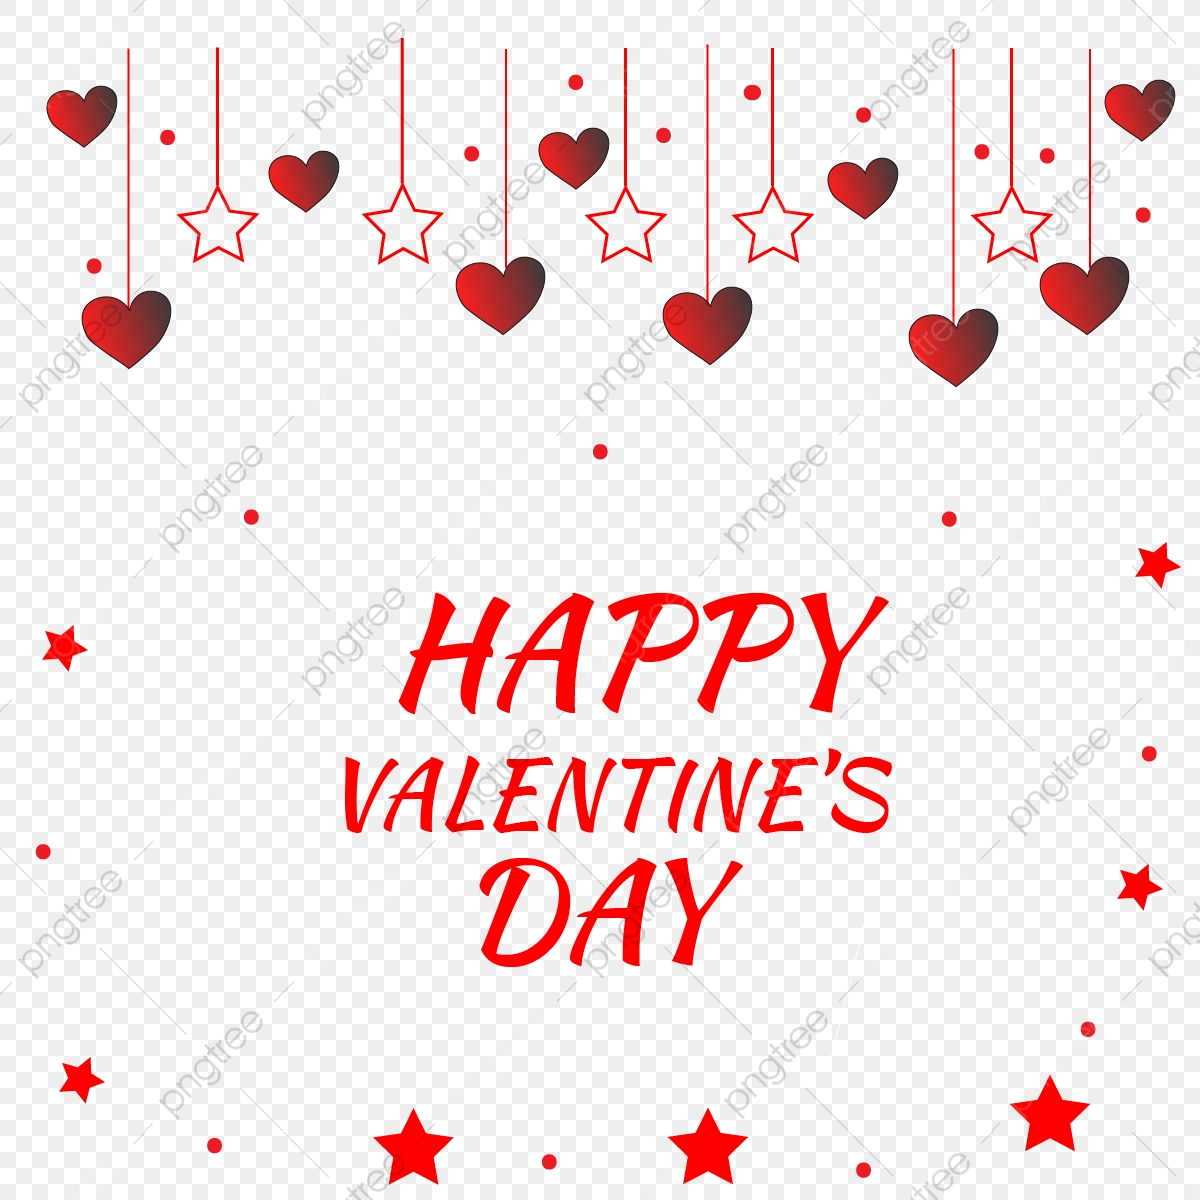 pngtree happy valentine s day transparent png png image